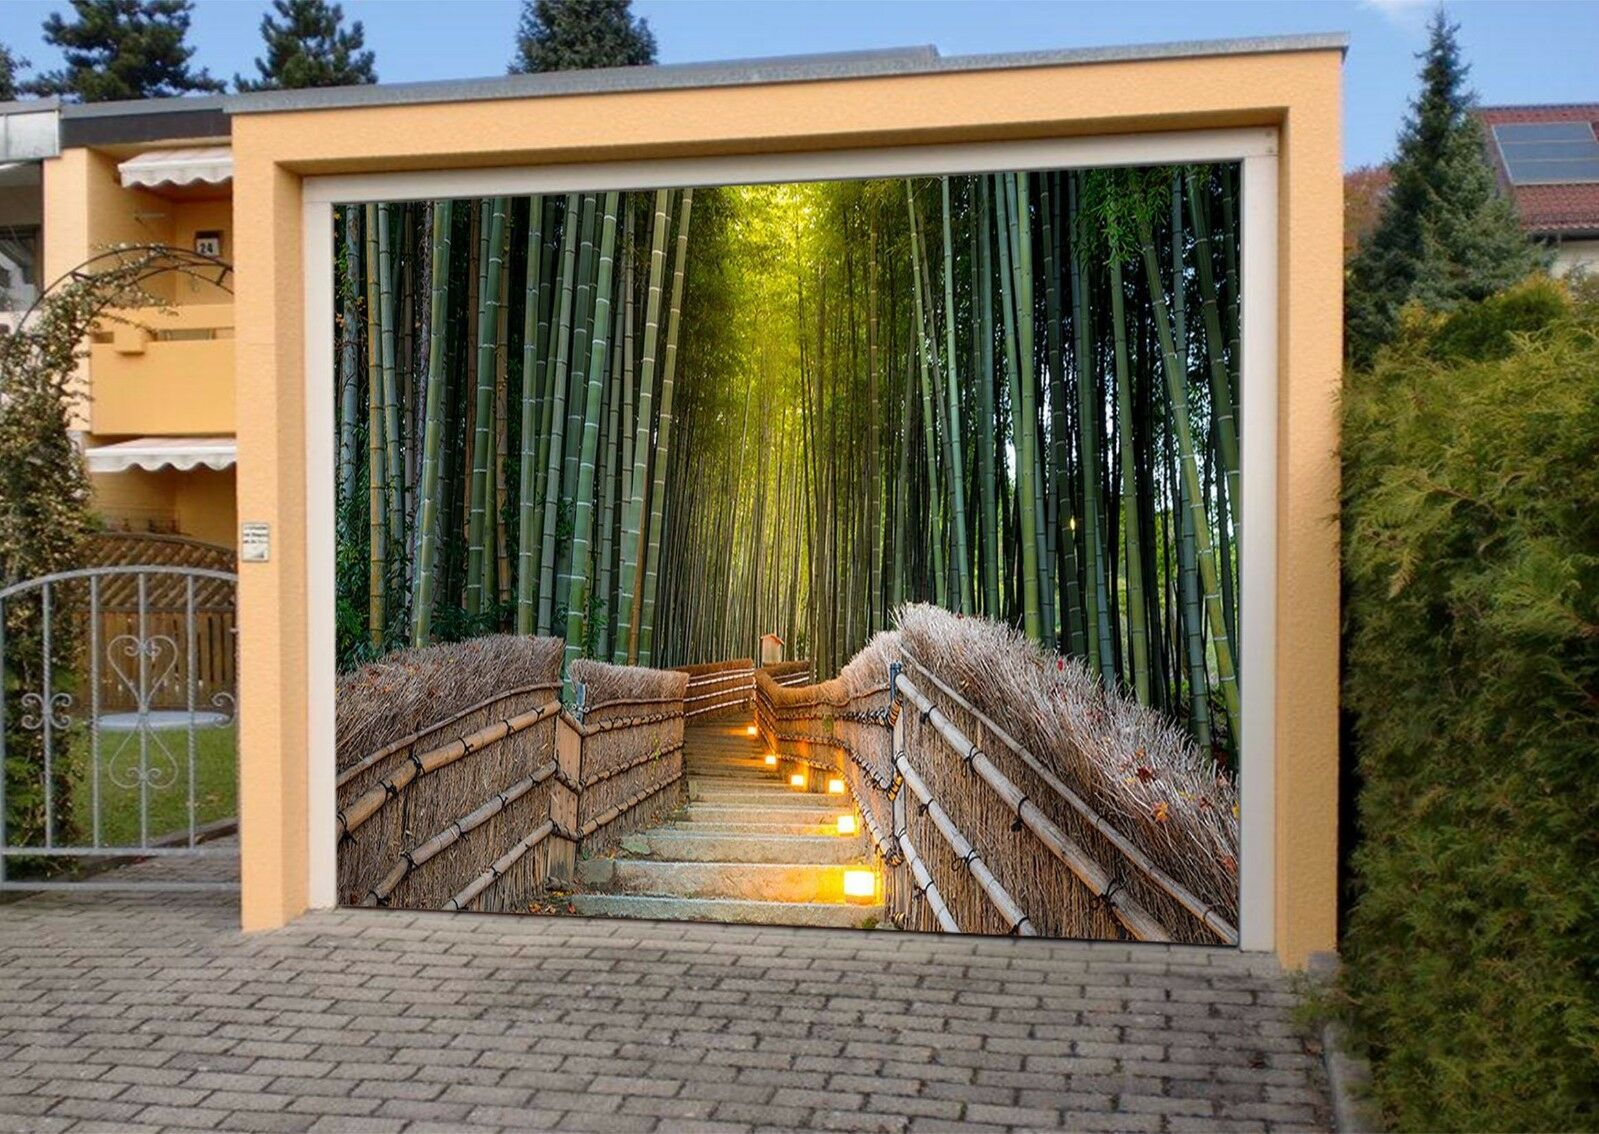 3D Bamboos Hut 53 Garage Door Murals Wall Print Decal Wall AJ WALLPAPER AU Lemon